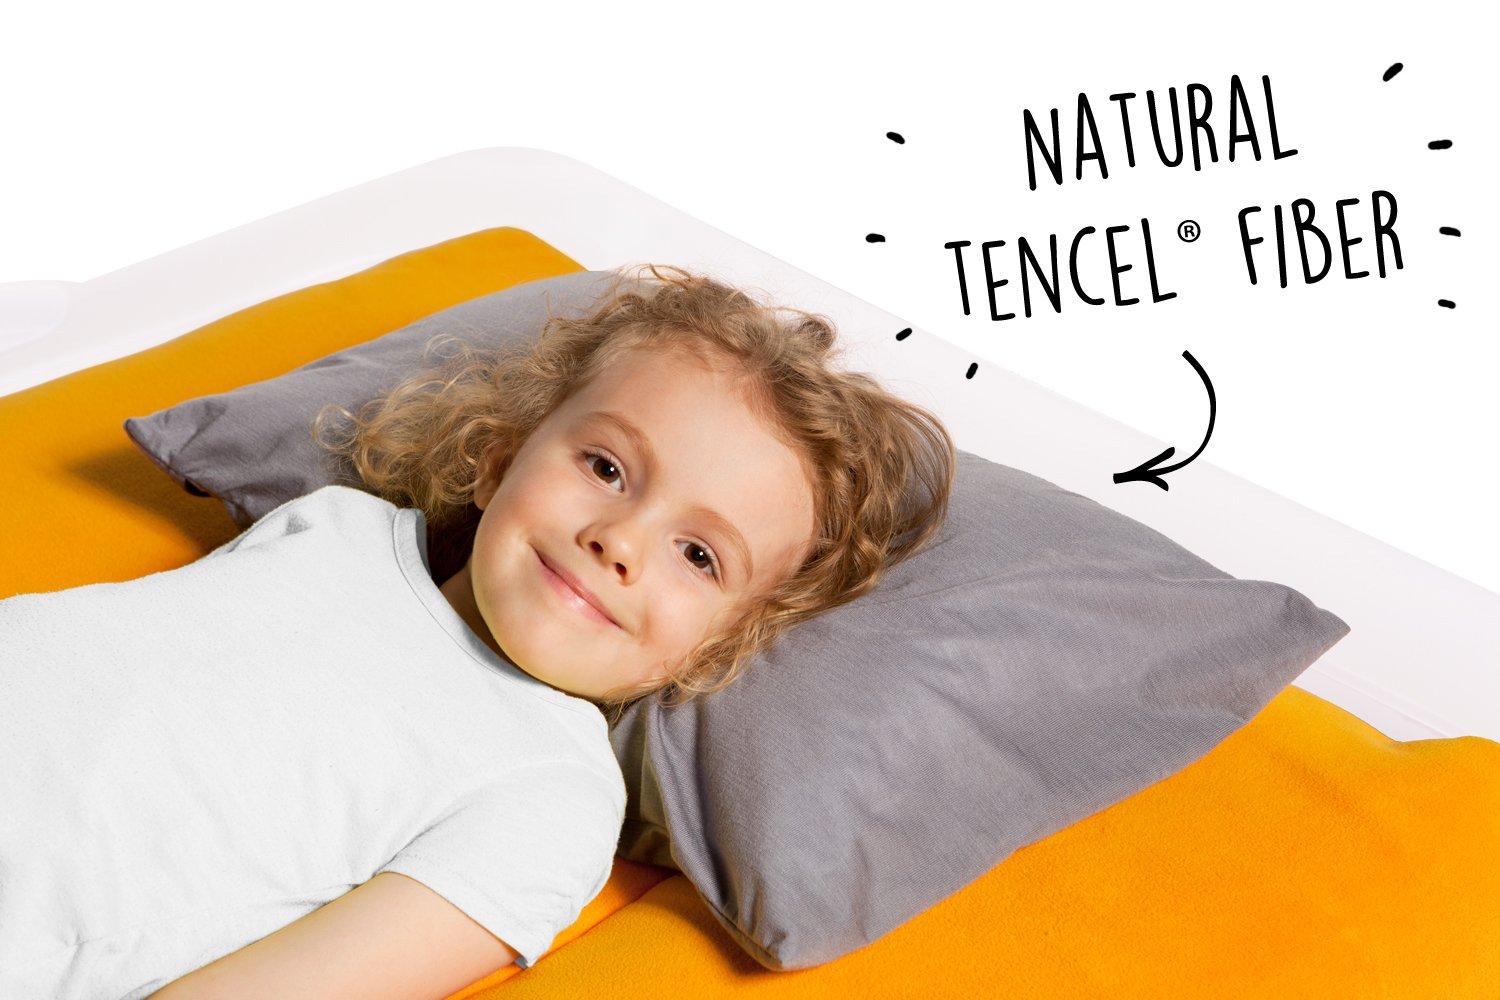 The Shrunks Natural Fibre - Water-proof Toddler Pillow and Cover, Grey by The Shrunks (Image #2)